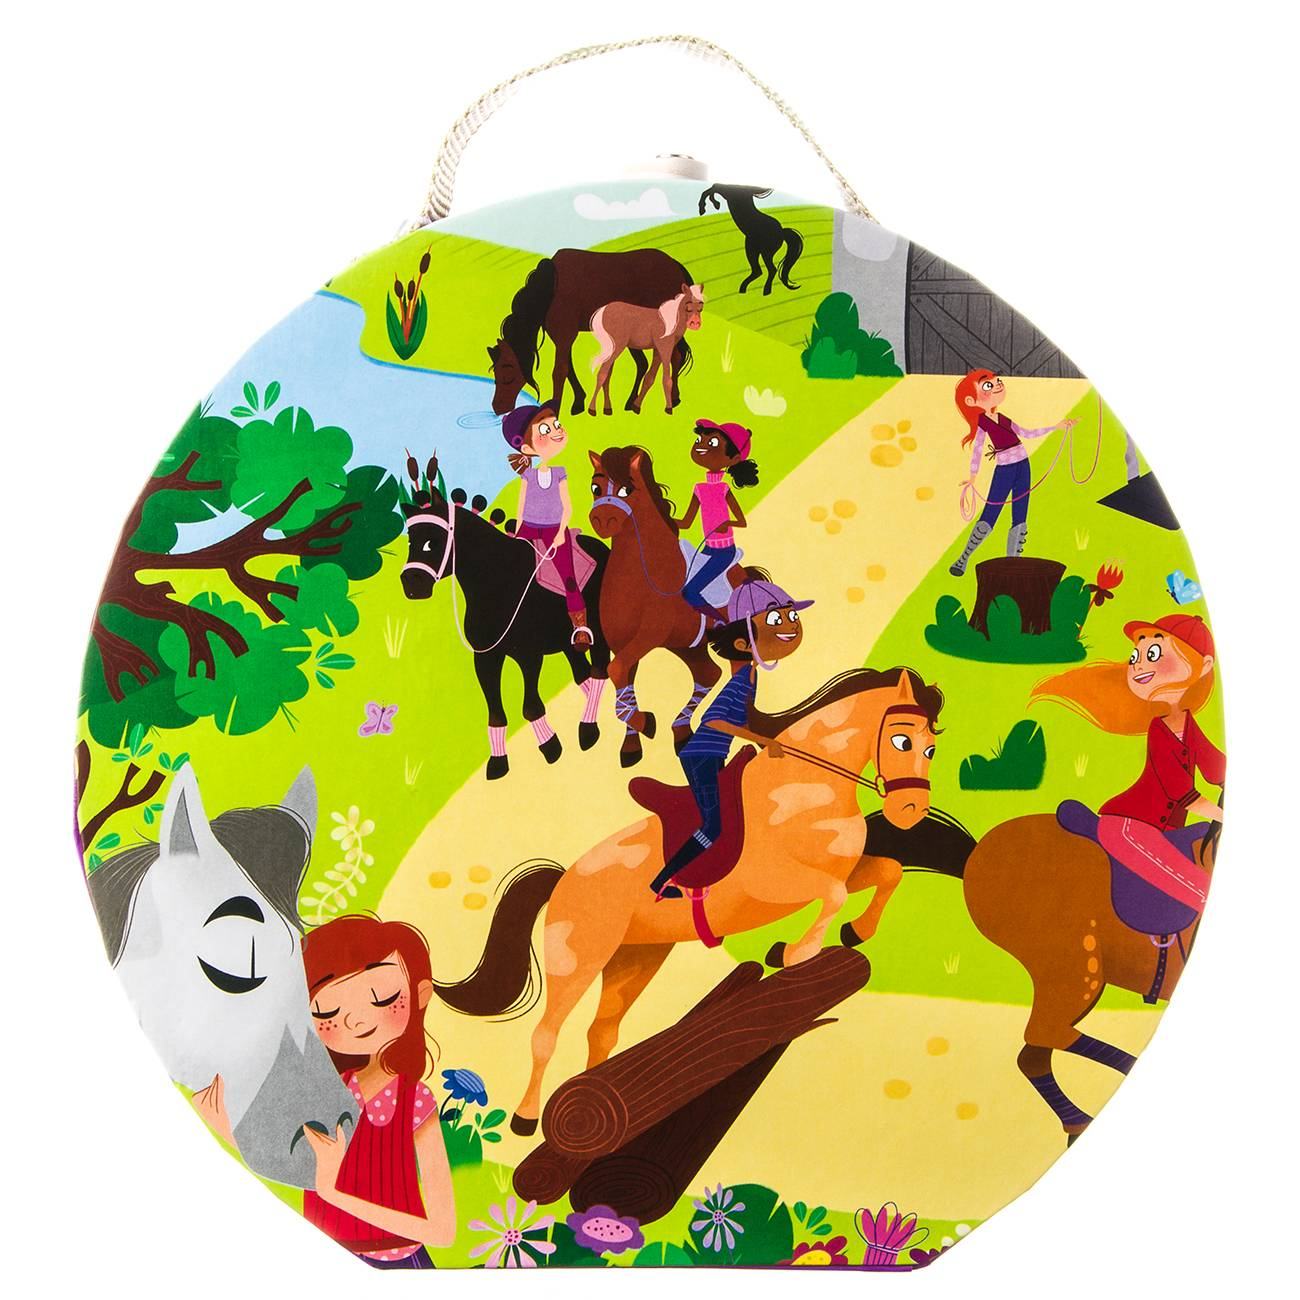 HAT BOXED PUZZLE 'HORSE RIDING SCHOOL